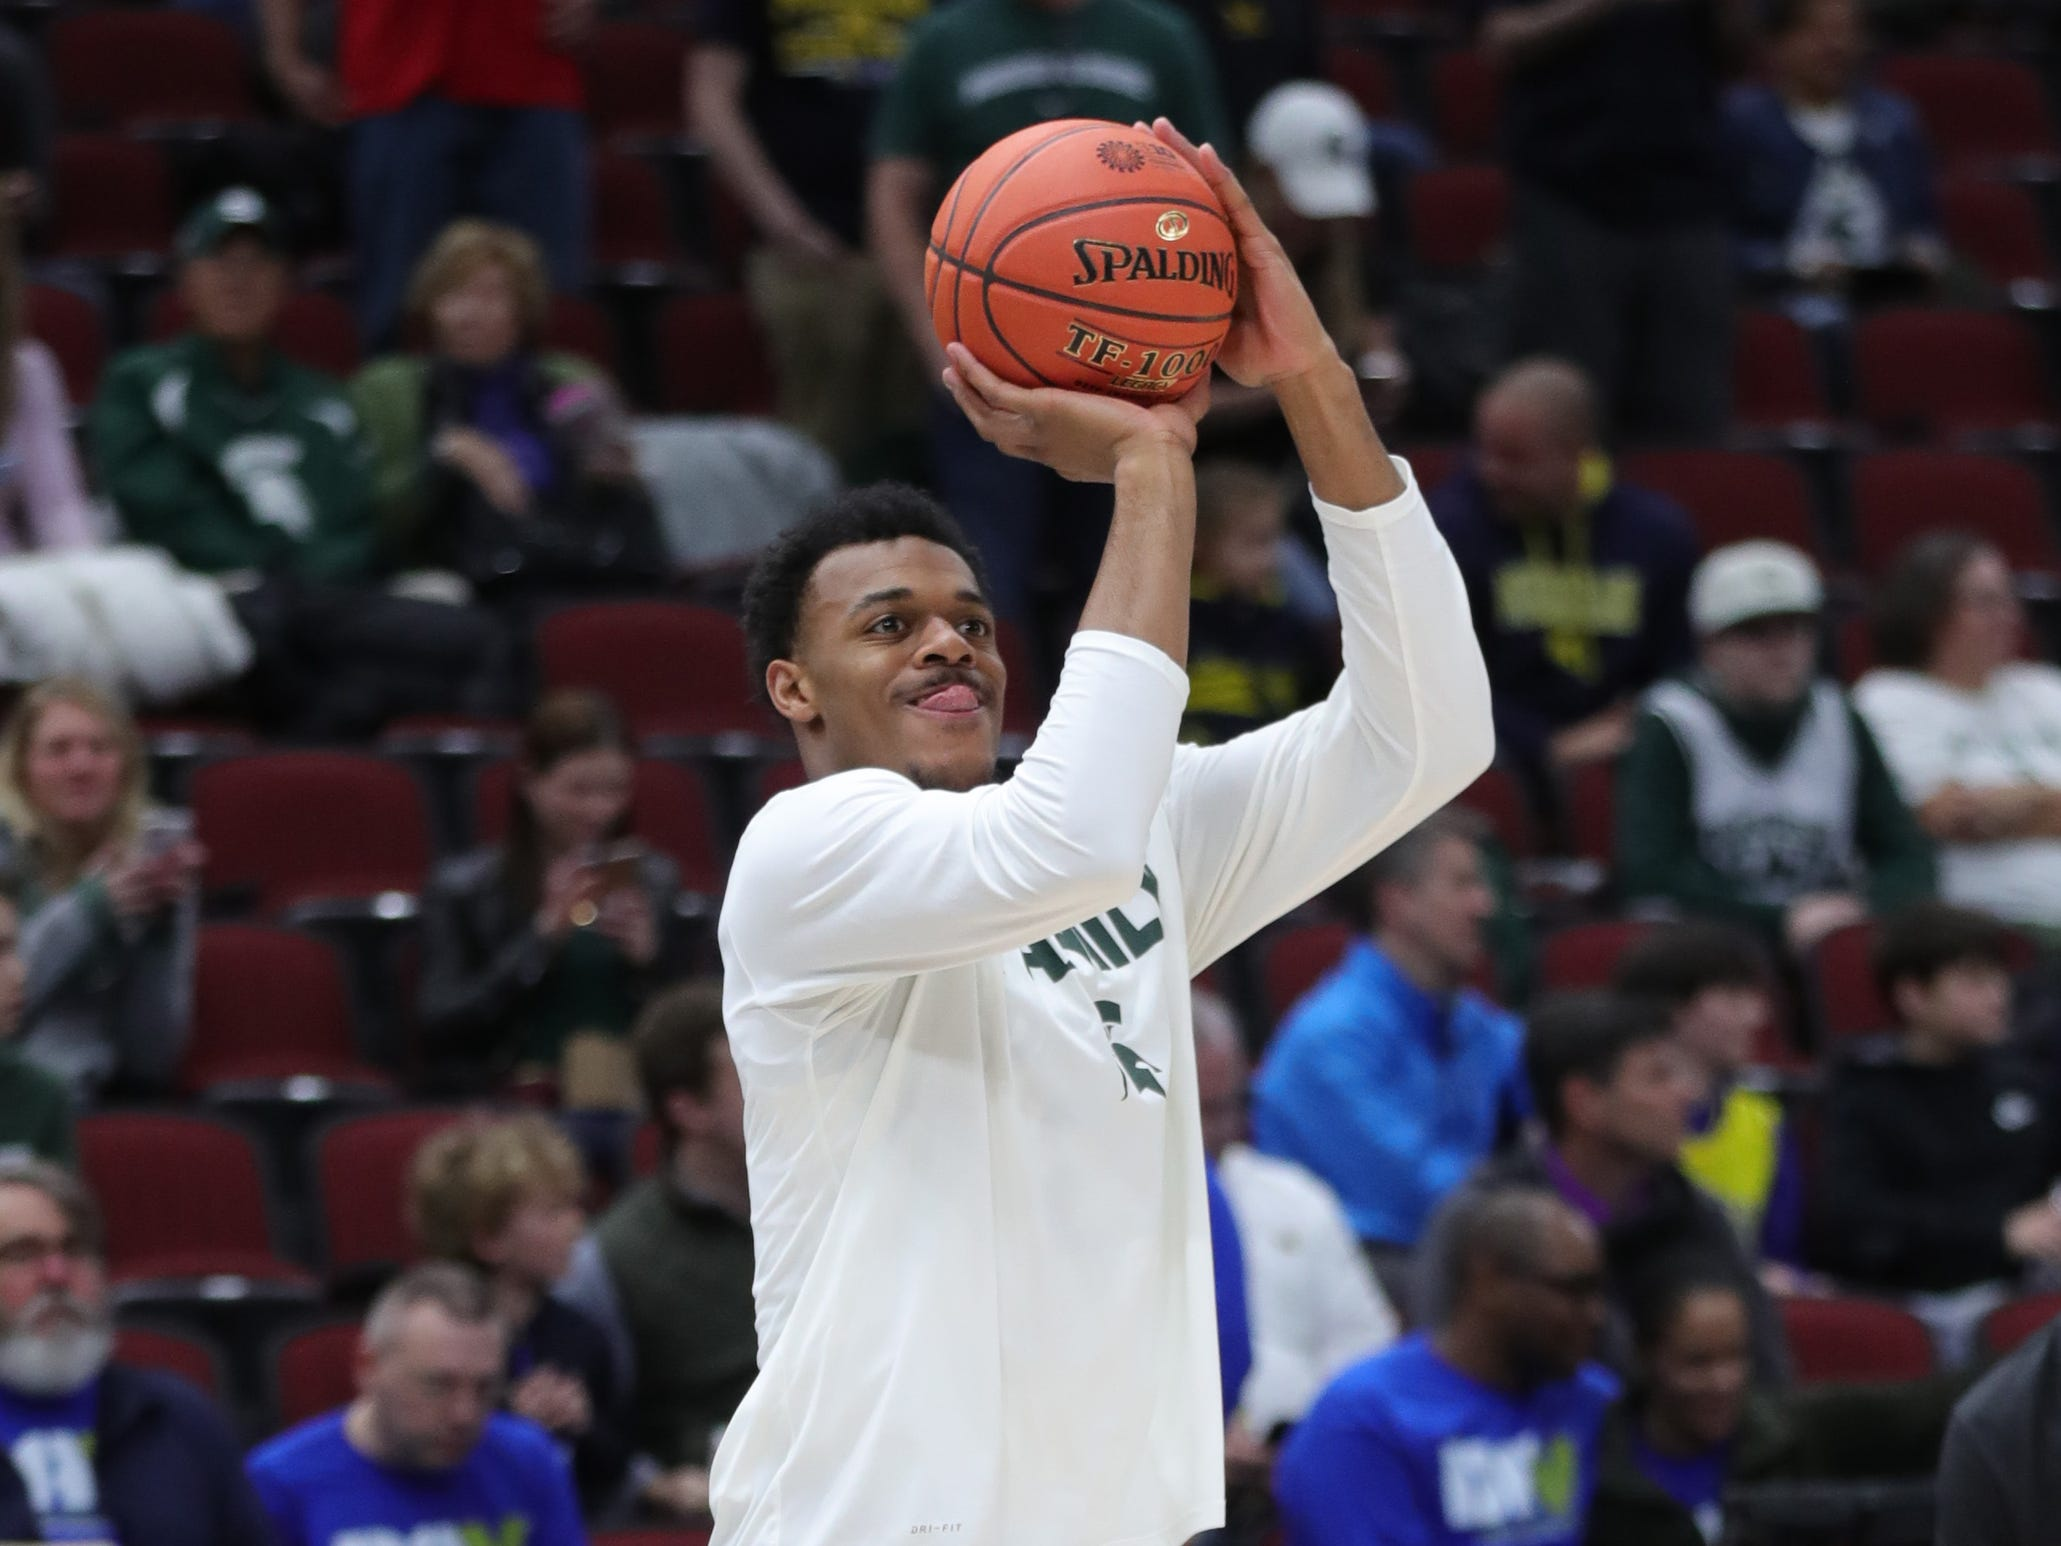 Michigan State's Xavier Tillman warms up before the Big Ten tournament championship against Michigan, Sunday, March 17, 2019 at the United Center in Chicago.